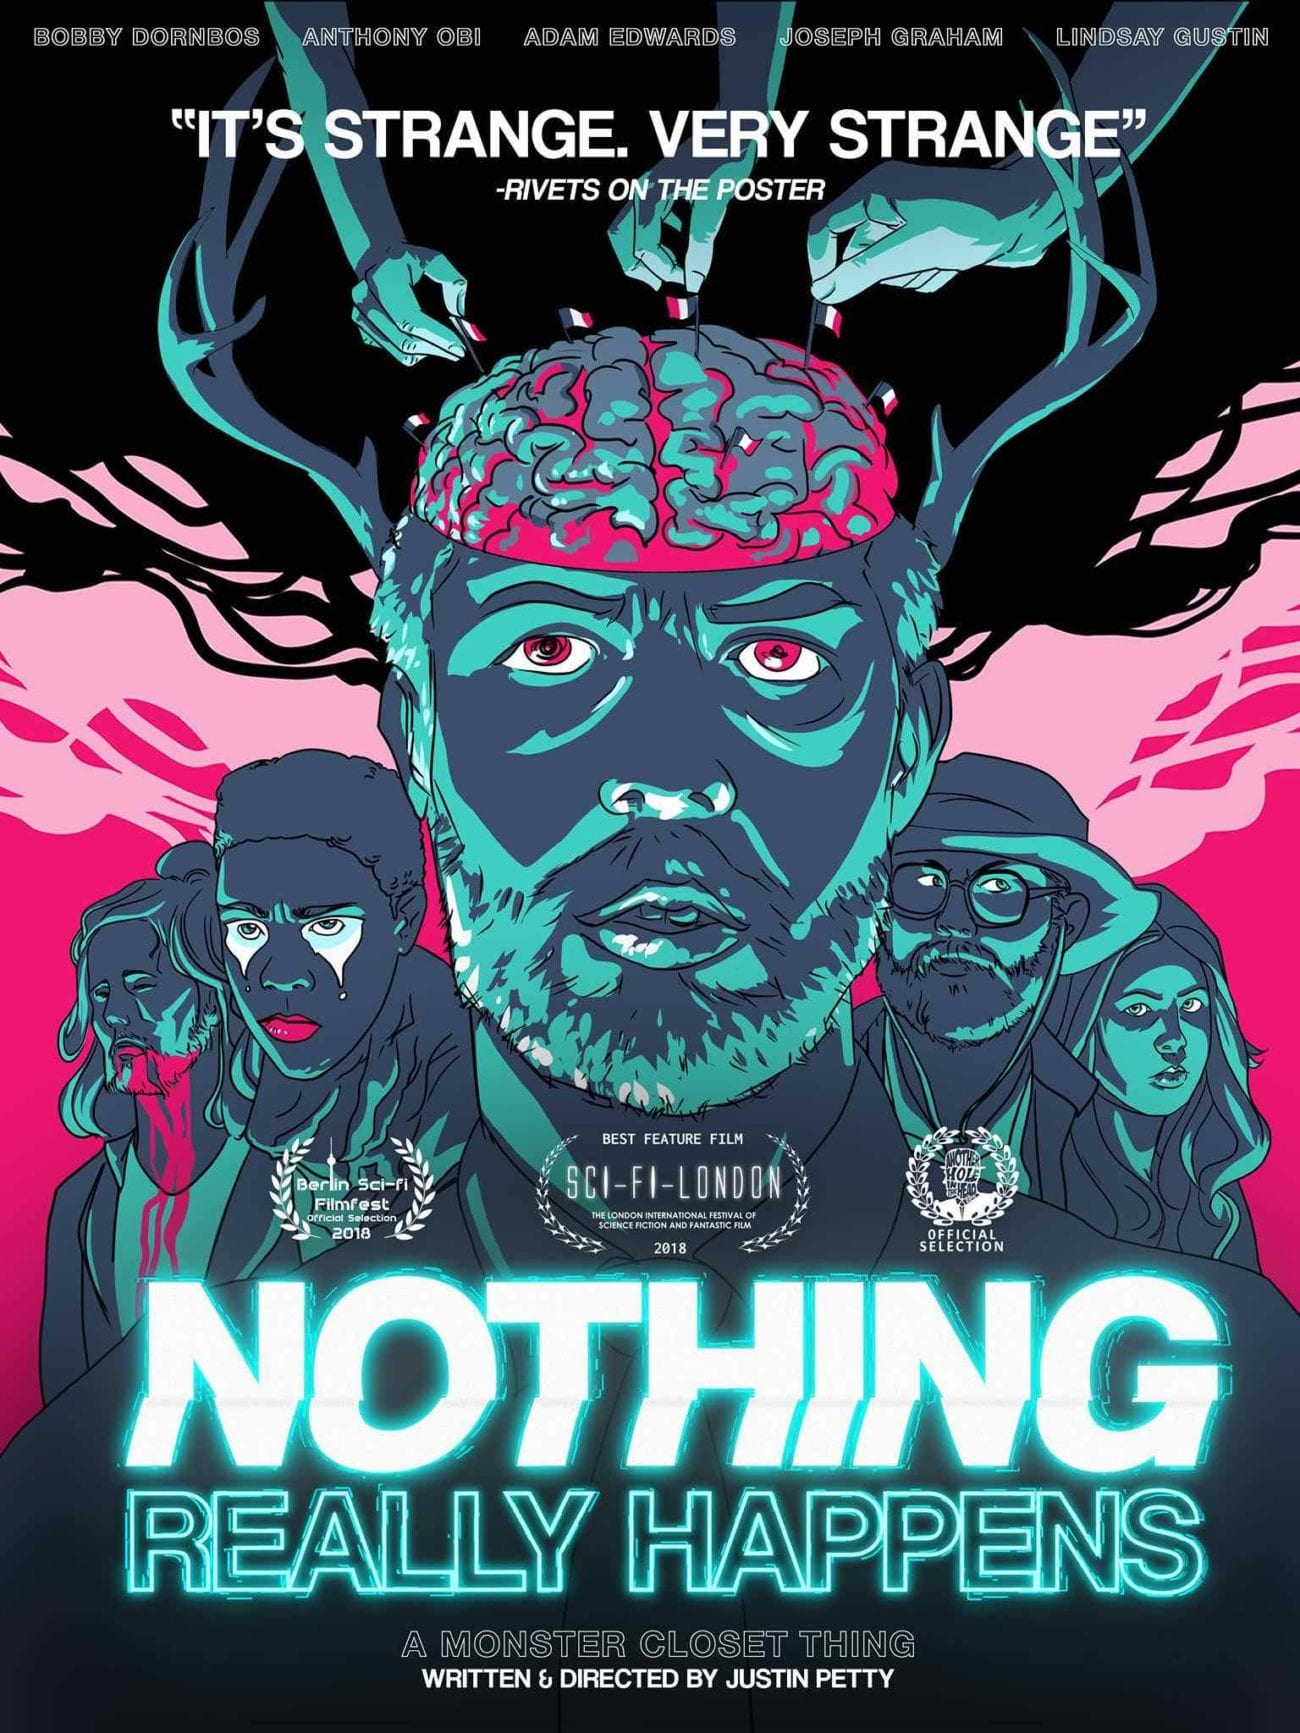 We were lucky enough to interview Justin Petty and get the 411 on his debut sci-fi feature 'Nothing Really Happens', and what's upcoming for him.